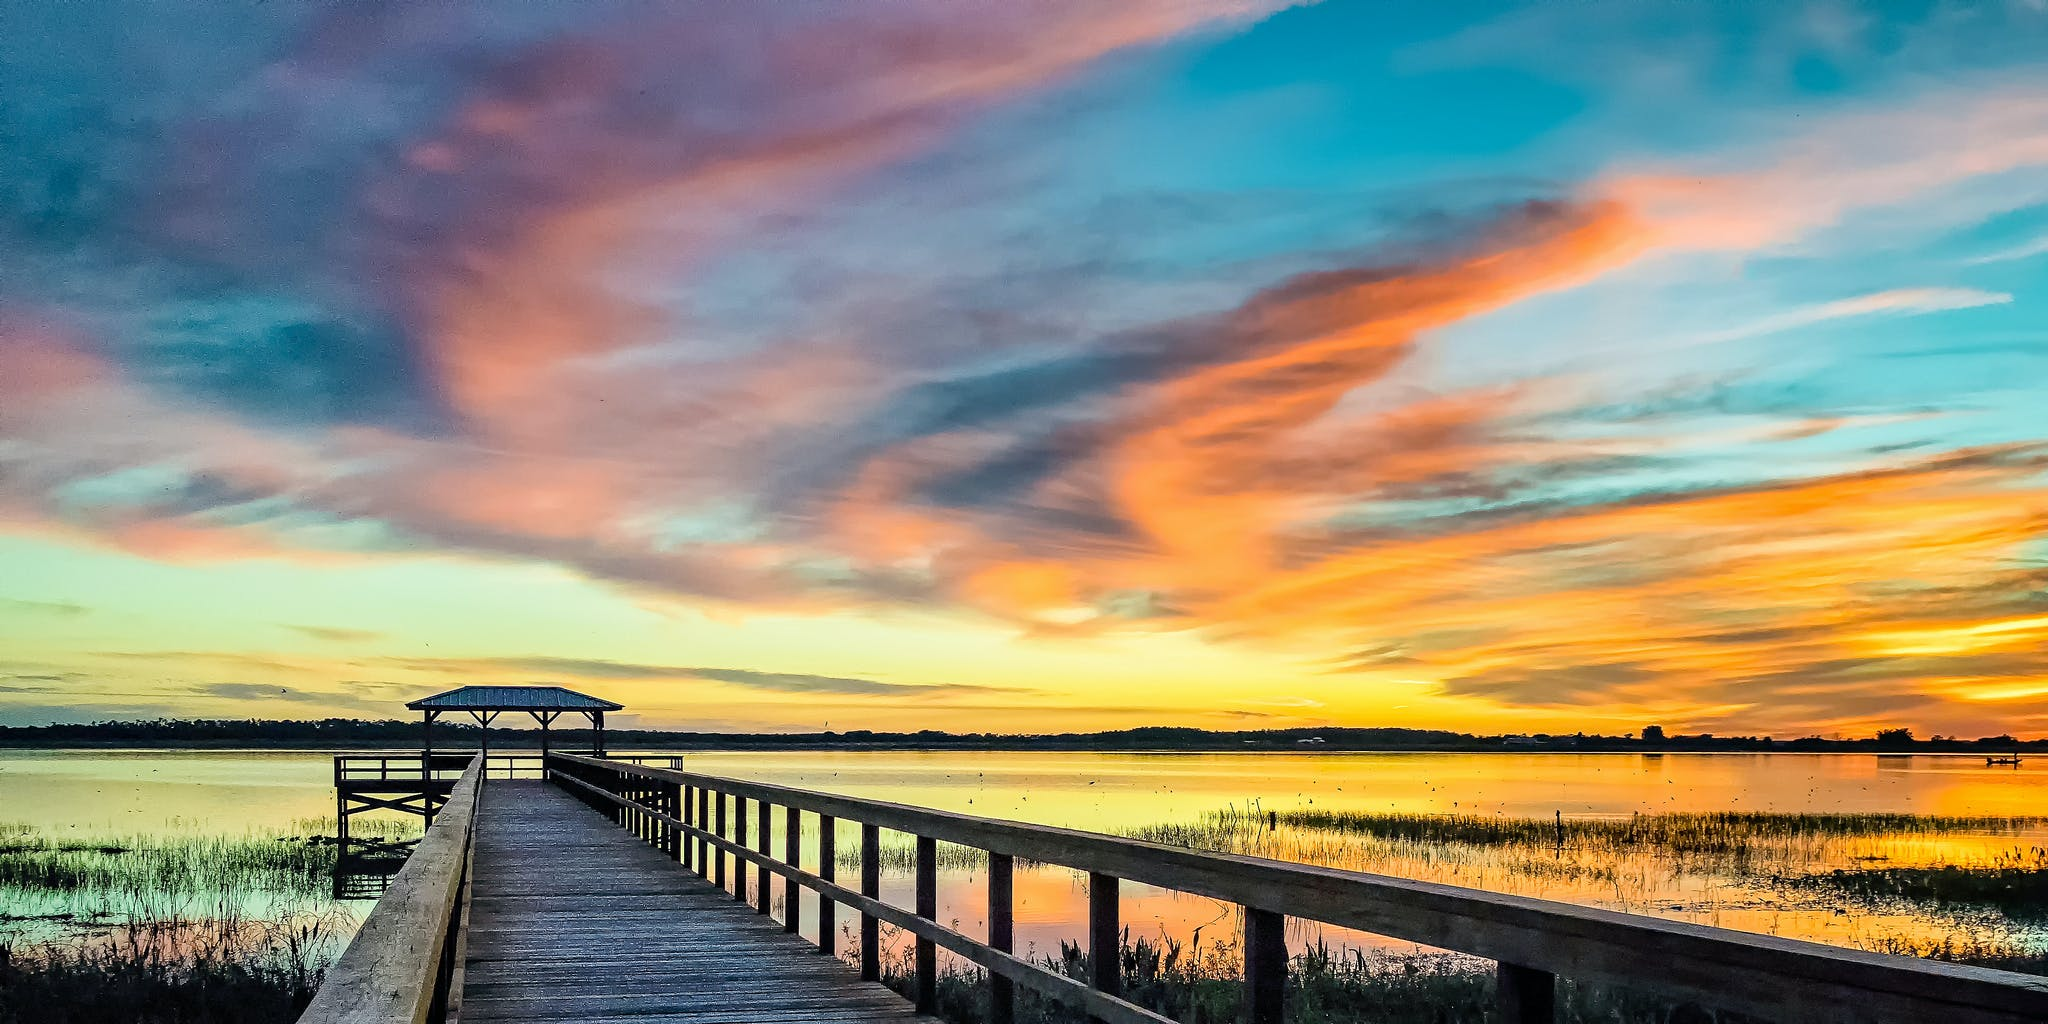 the colorful sky brightens up a dock over Lake Tohopekaliga, FL